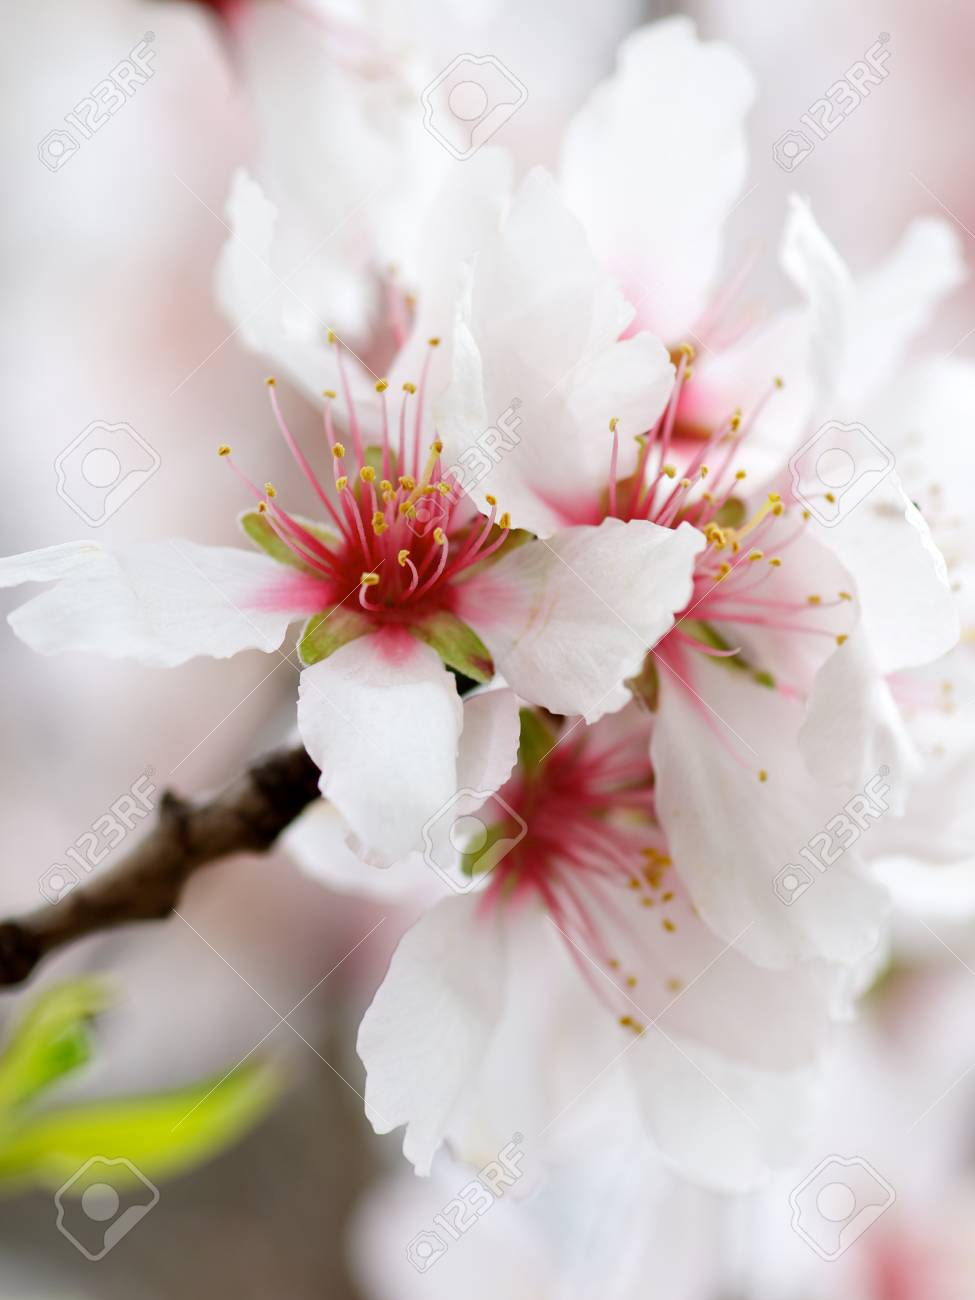 beauty white and red cherry blossoms on blurred cherry flowers